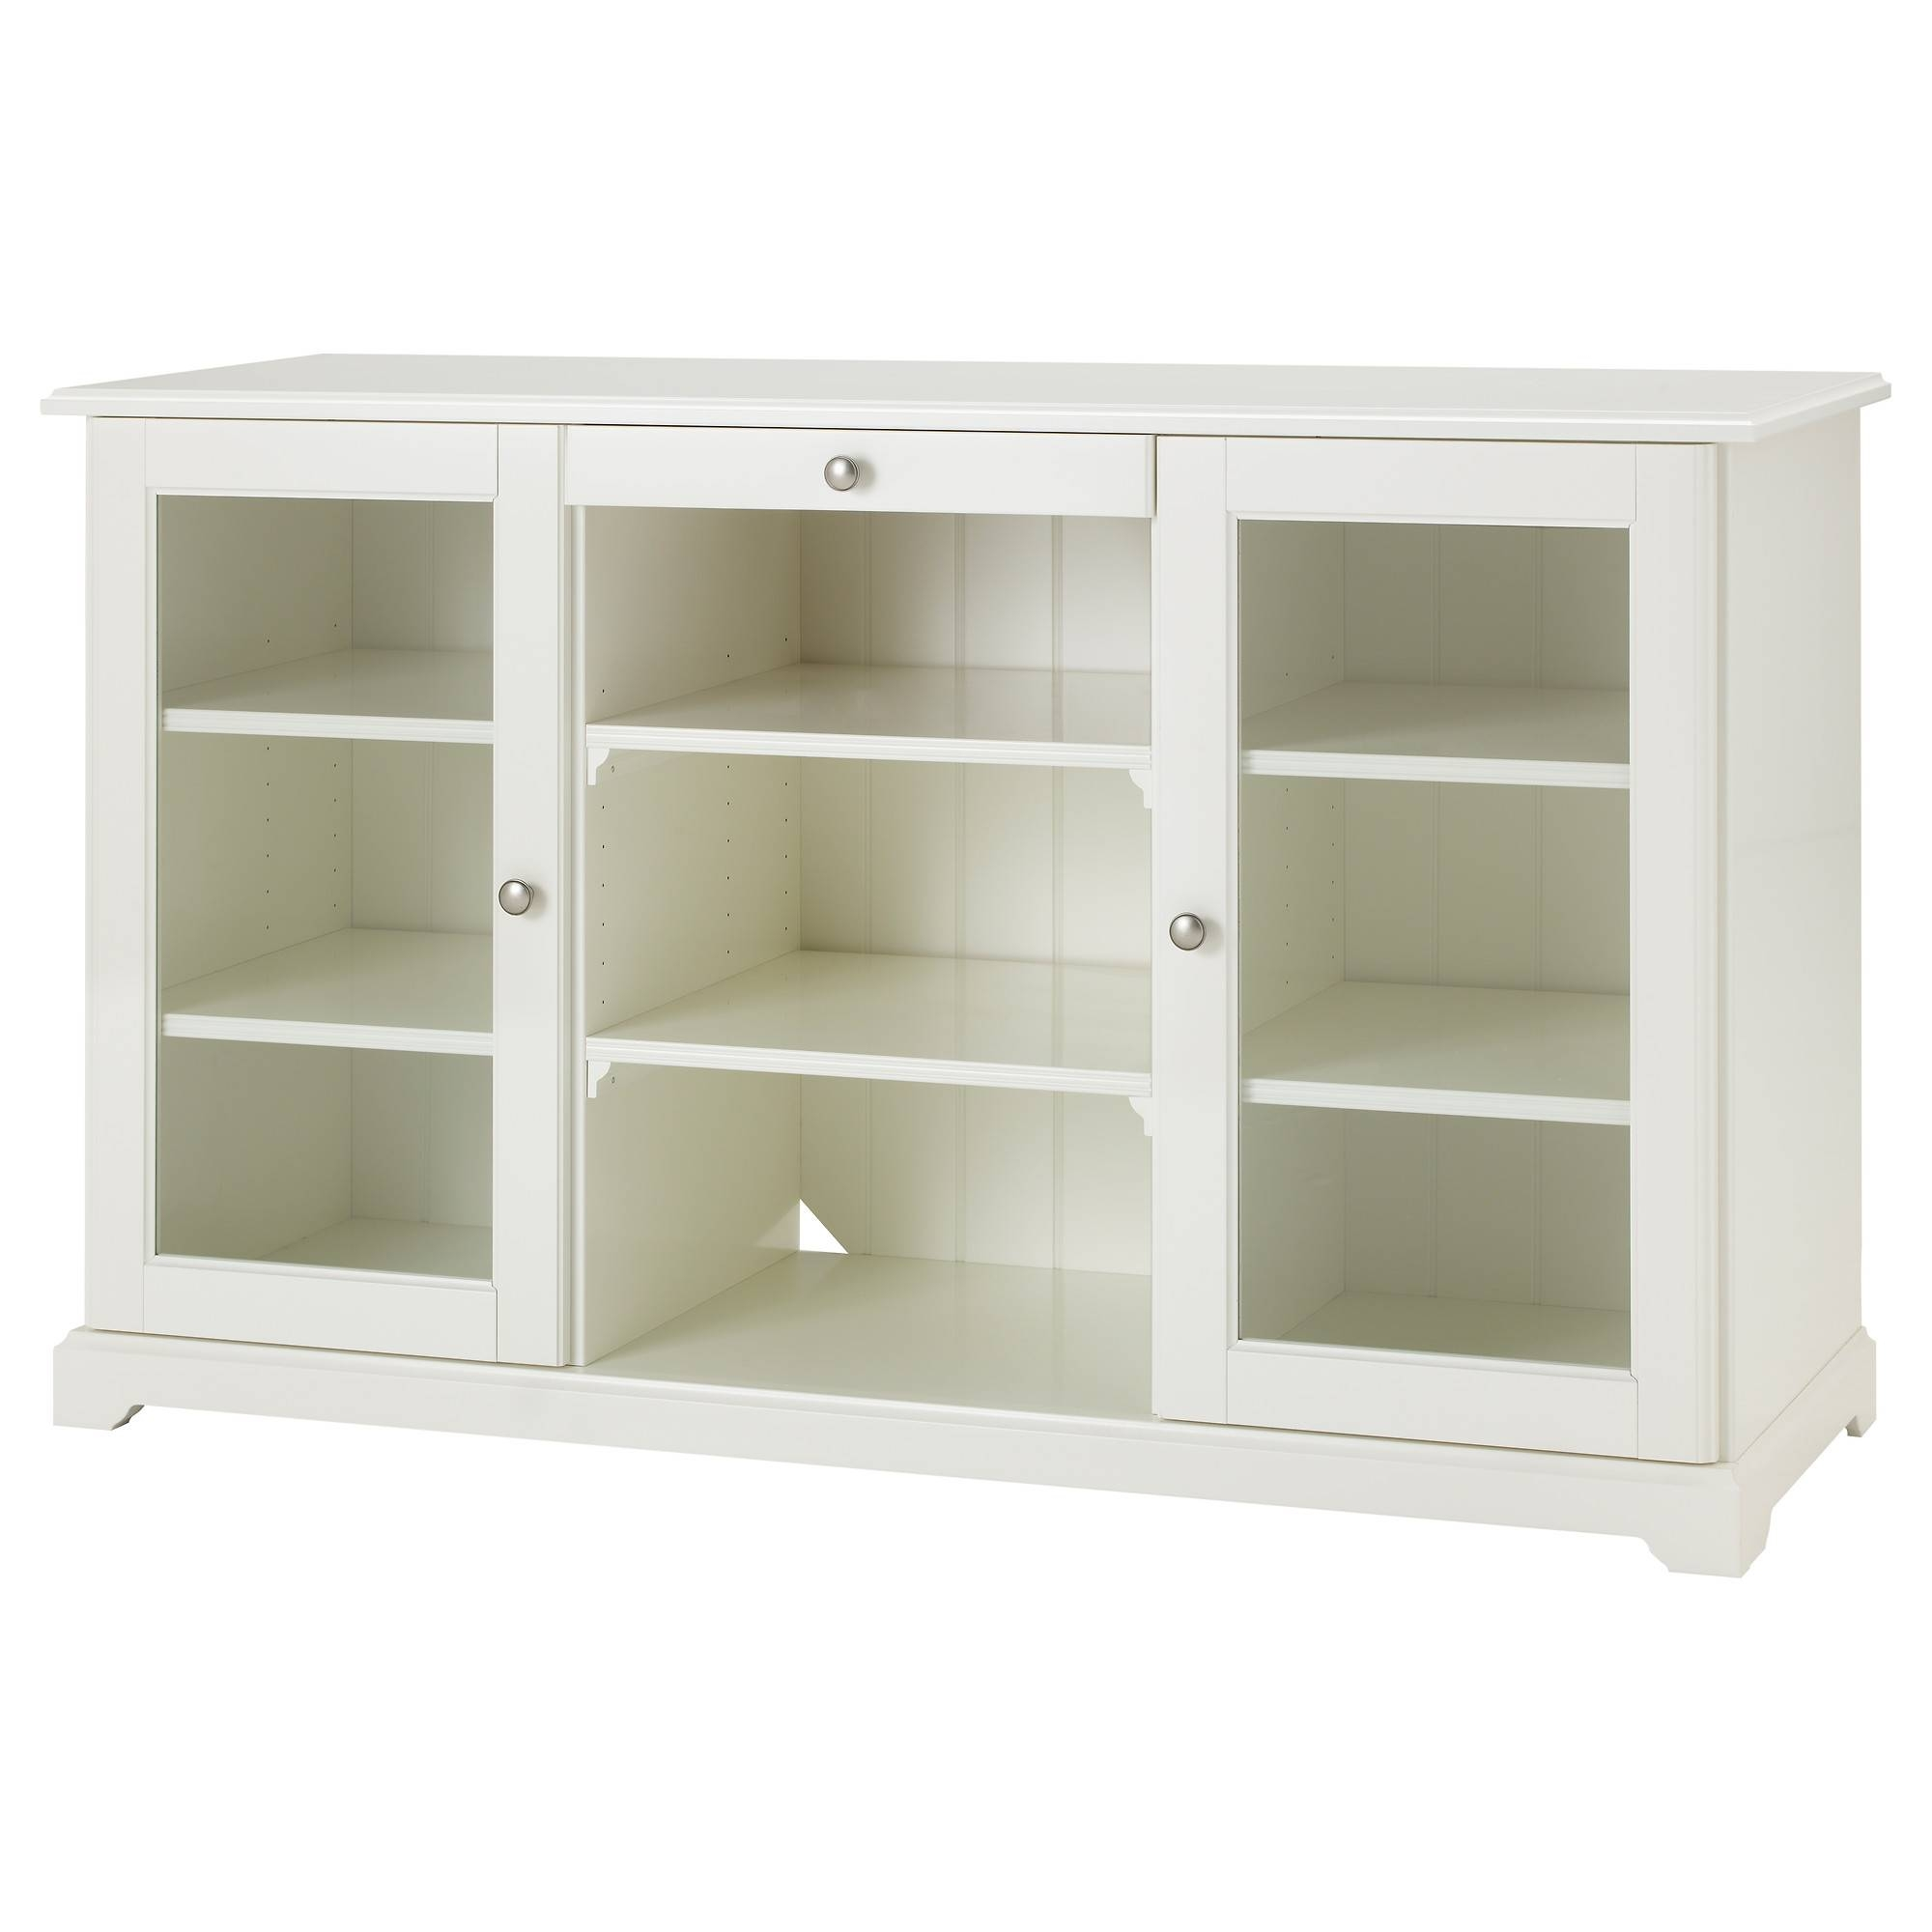 Liatorp Sideboard White 145X87 Cm – Ikea With Large White Sideboards (View 4 of 15)